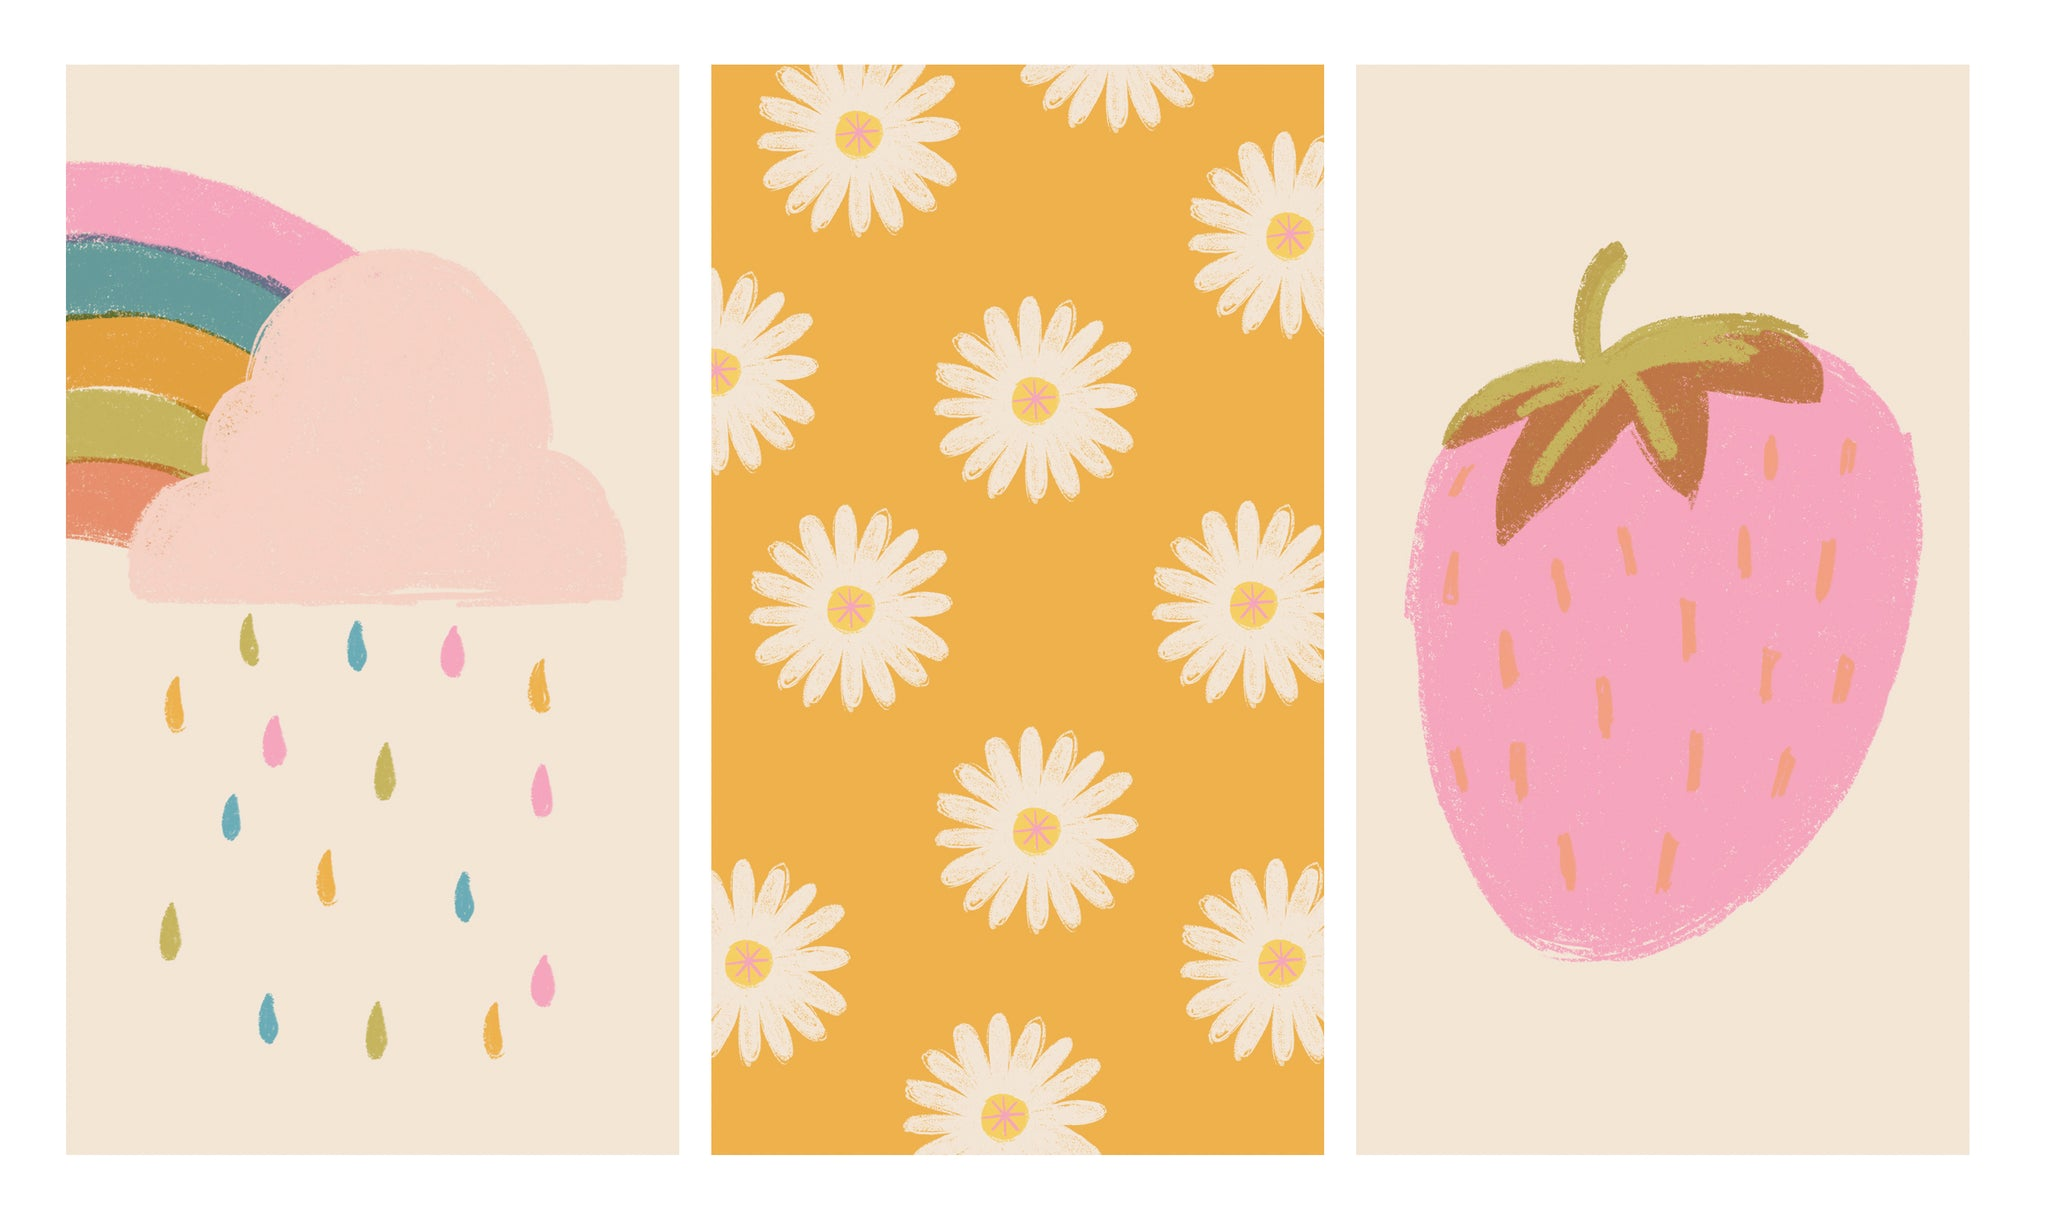 Three phone background designs. Colourful rainbow and cloud, illustrated multiple daisies and pink illustrated strawberry